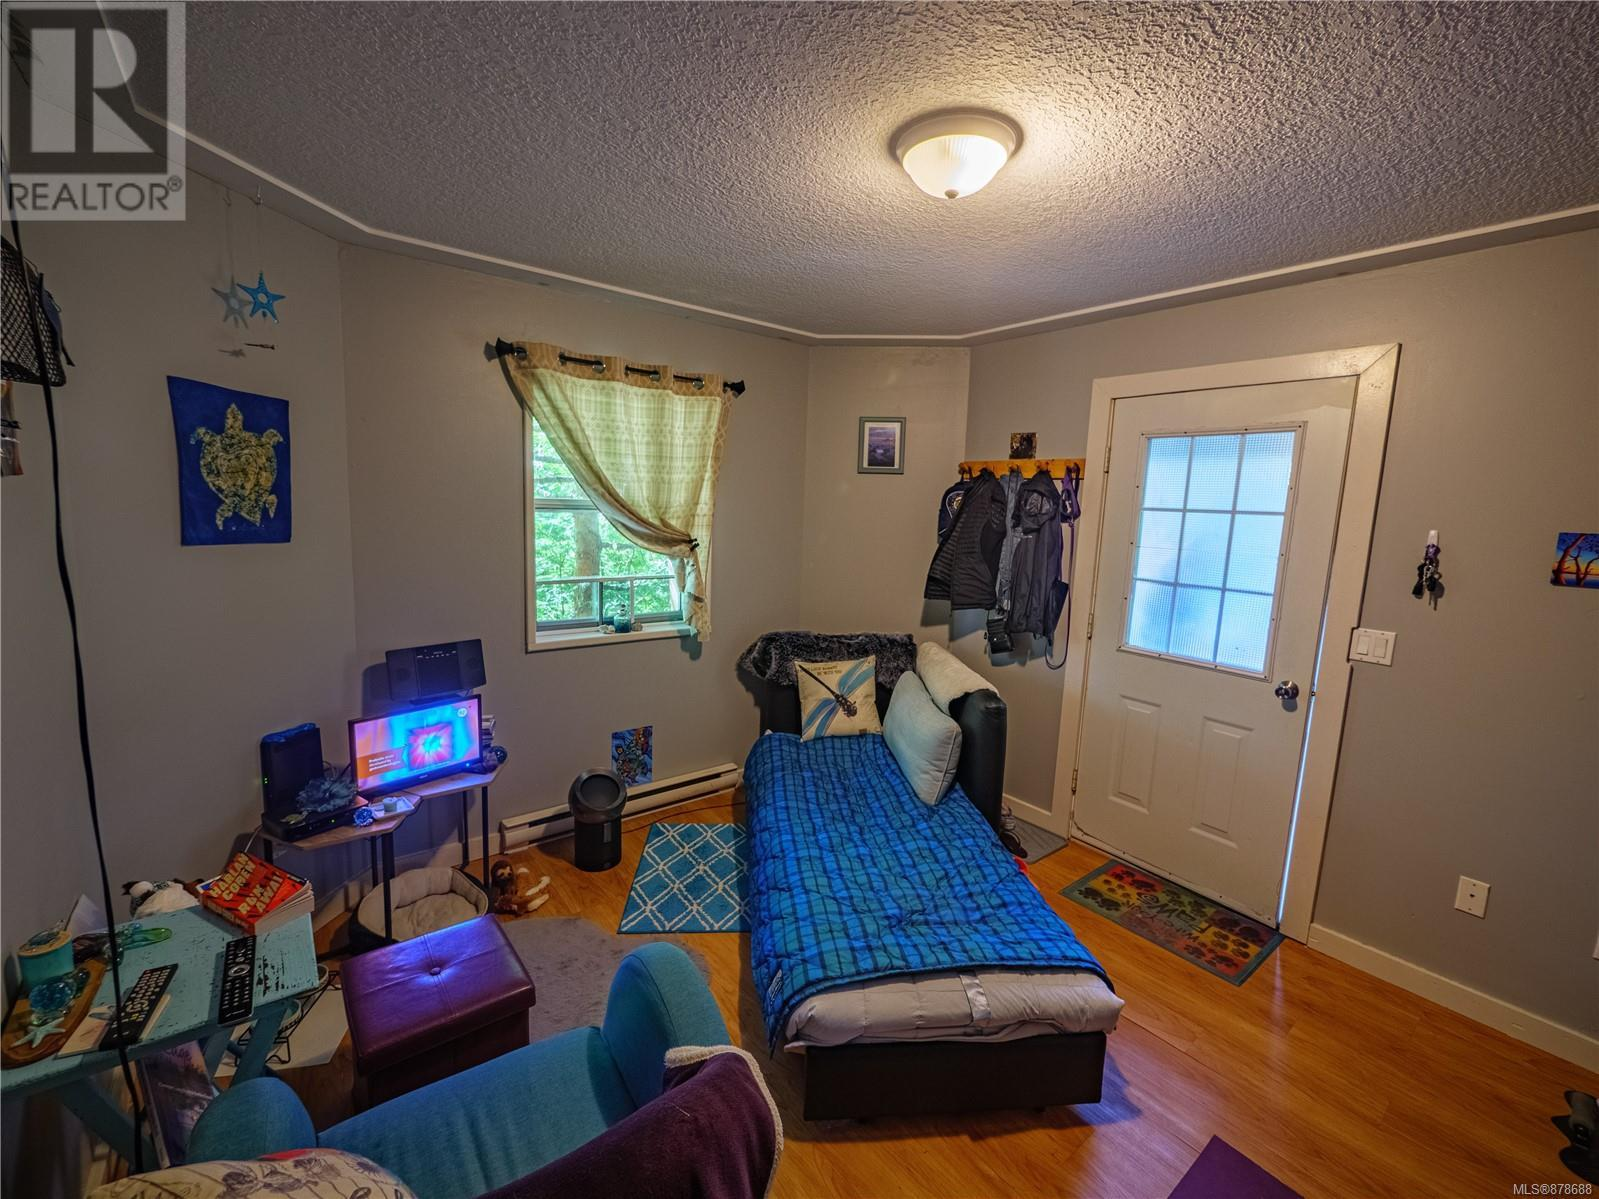 MLS® #878688 - Ucluelet Other For sale Image #8